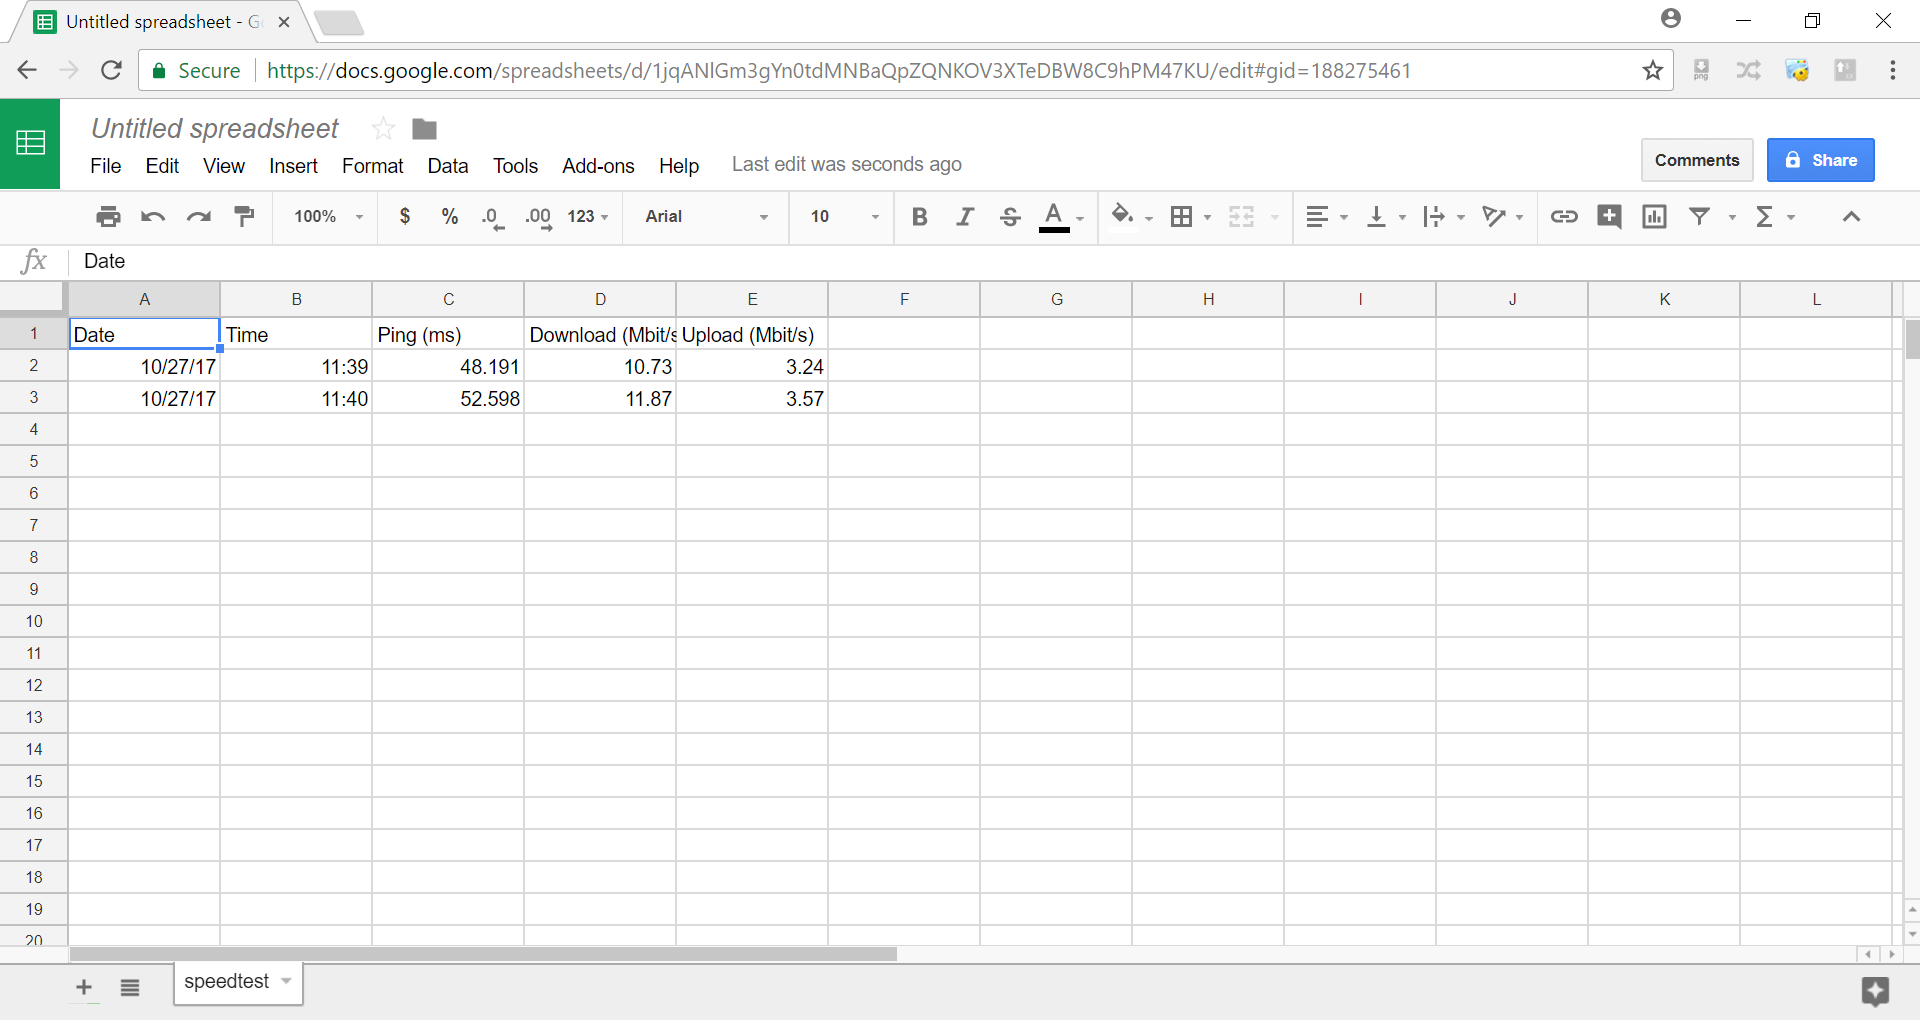 Google Sheets - speedtest.csv